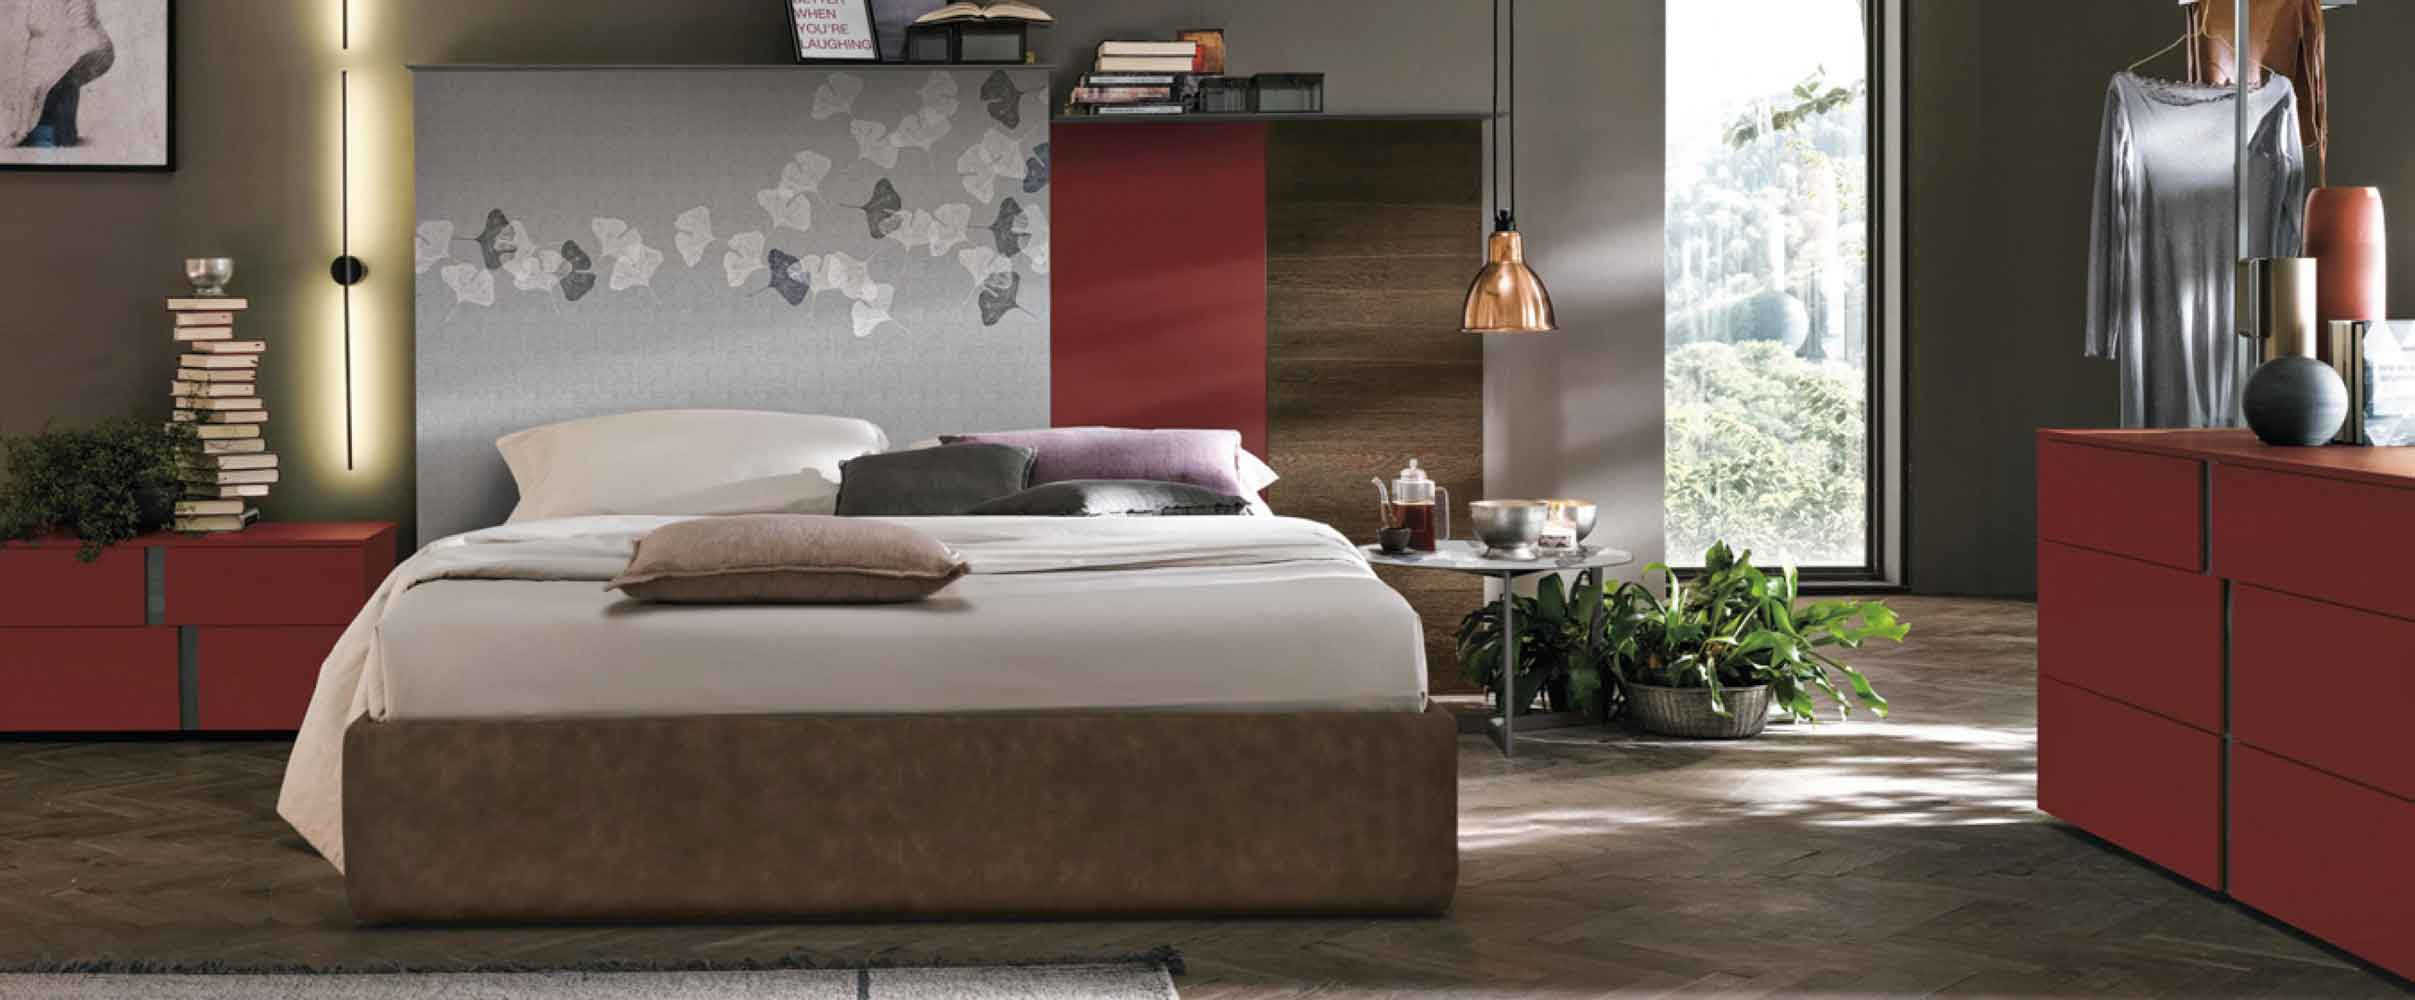 bed with no headboard, brown leather bed, 1.50cm, bed for indoor use, bed with mattress, modern small bed for indoor use, krevati esoterikou xorou, 1.50cm bed for indoor use